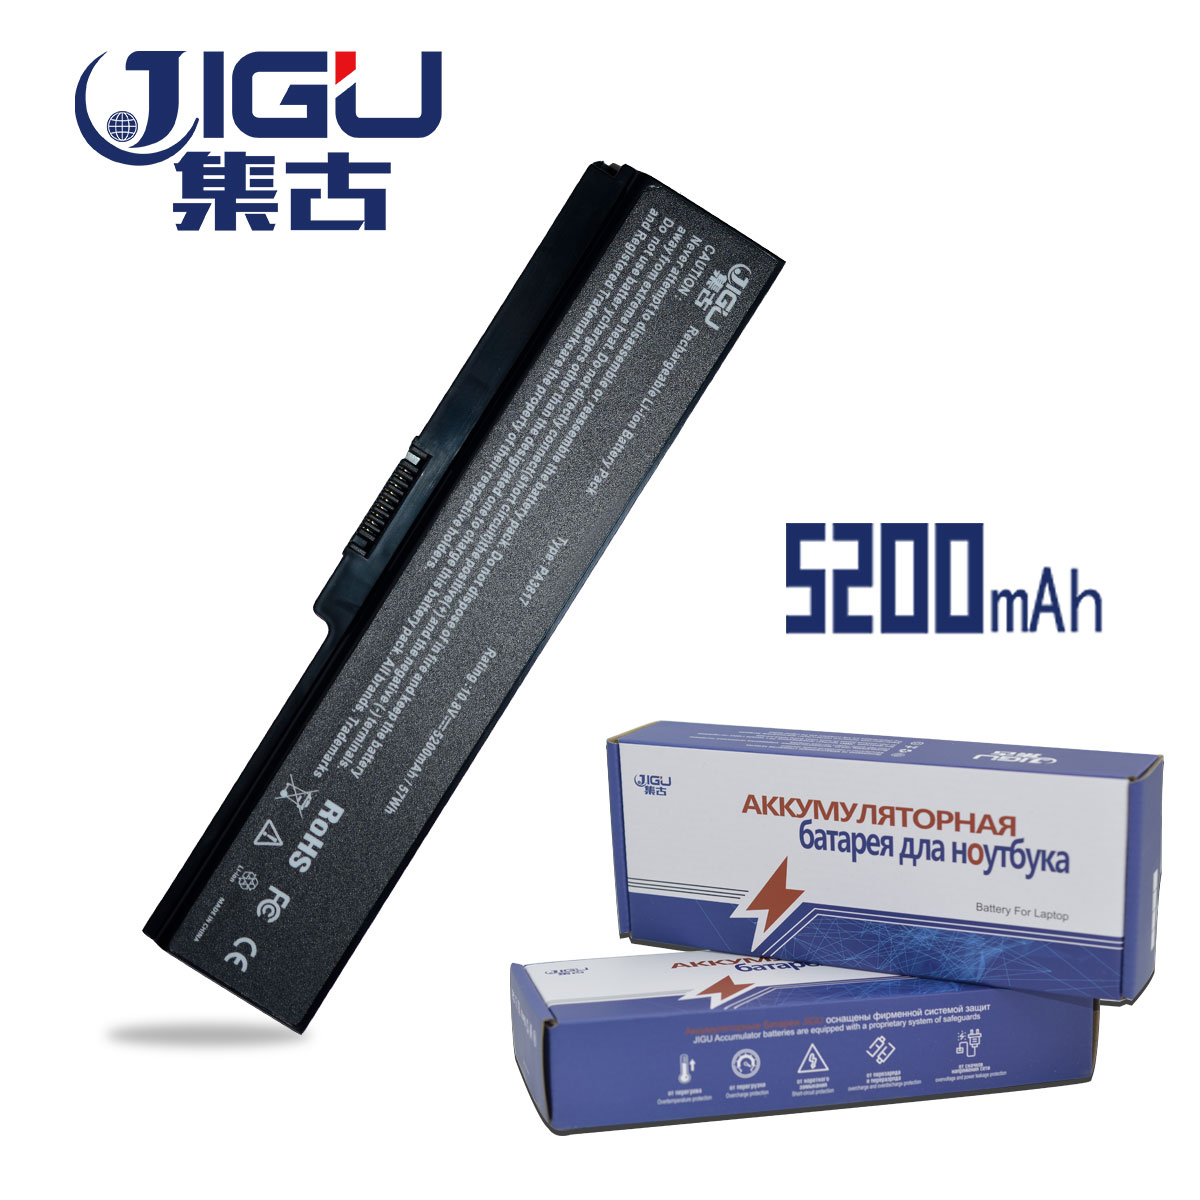 JIGU Laptop Battery For Toshiba Satellite L700 L700D L730 L735 L740 L745 L745D L750 L750D L755 L755D L770 L770D L775 L775D wzsm new laptop lcd cable for toshiba satellite l750 l750d l755 l755d video flex cable dd0blblc000 dd0blblc040